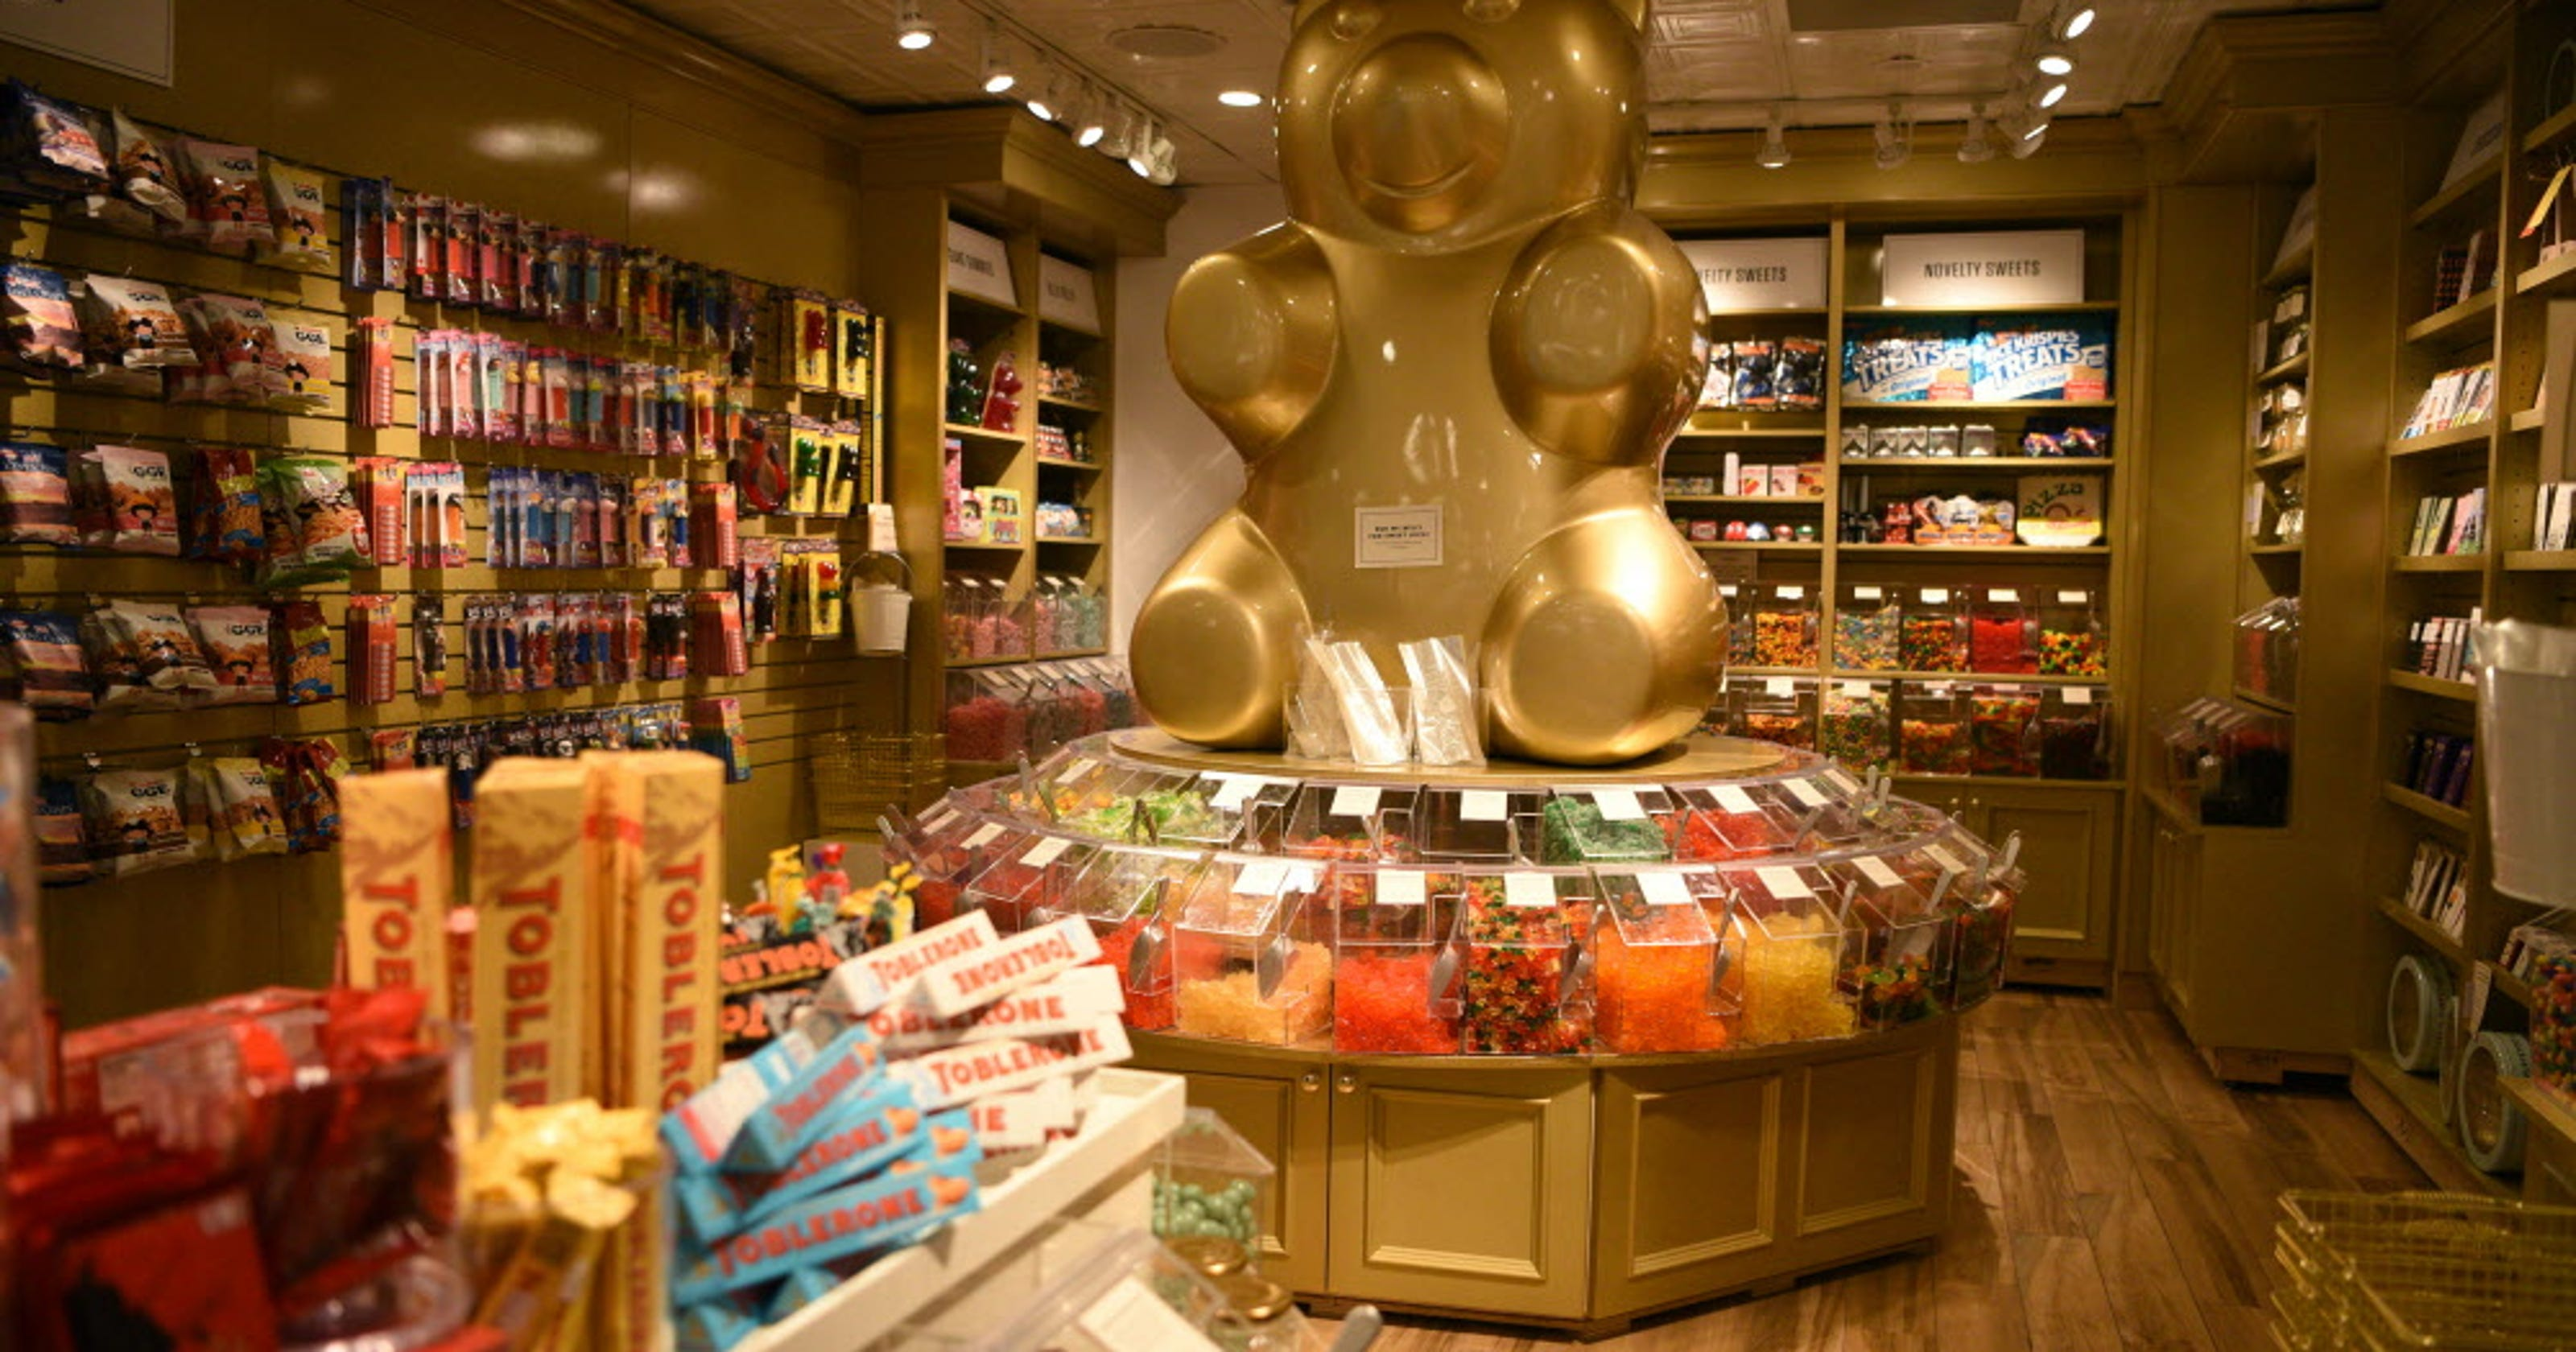 Ung: A candy store for grownups